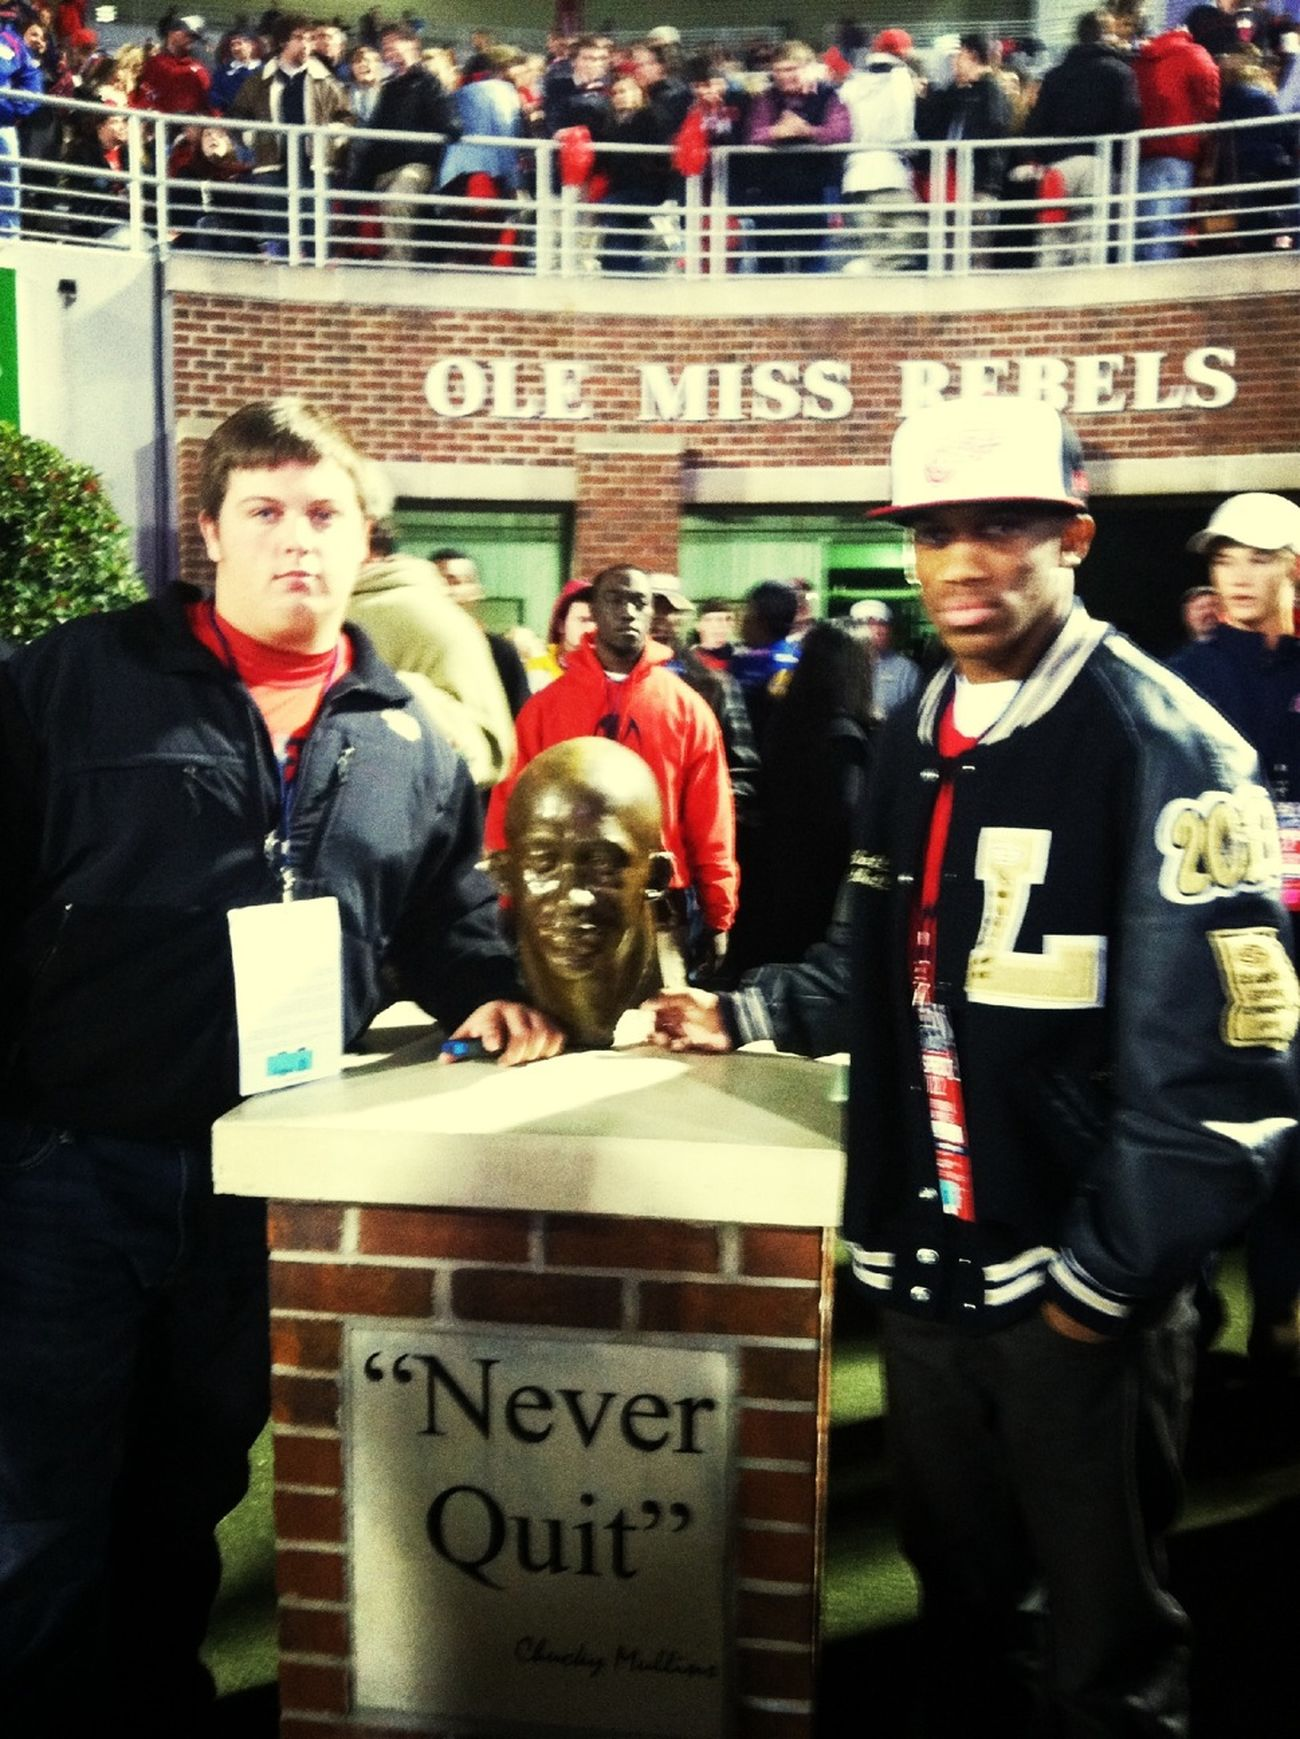 Me & My Boi Beezy At Ole Miss